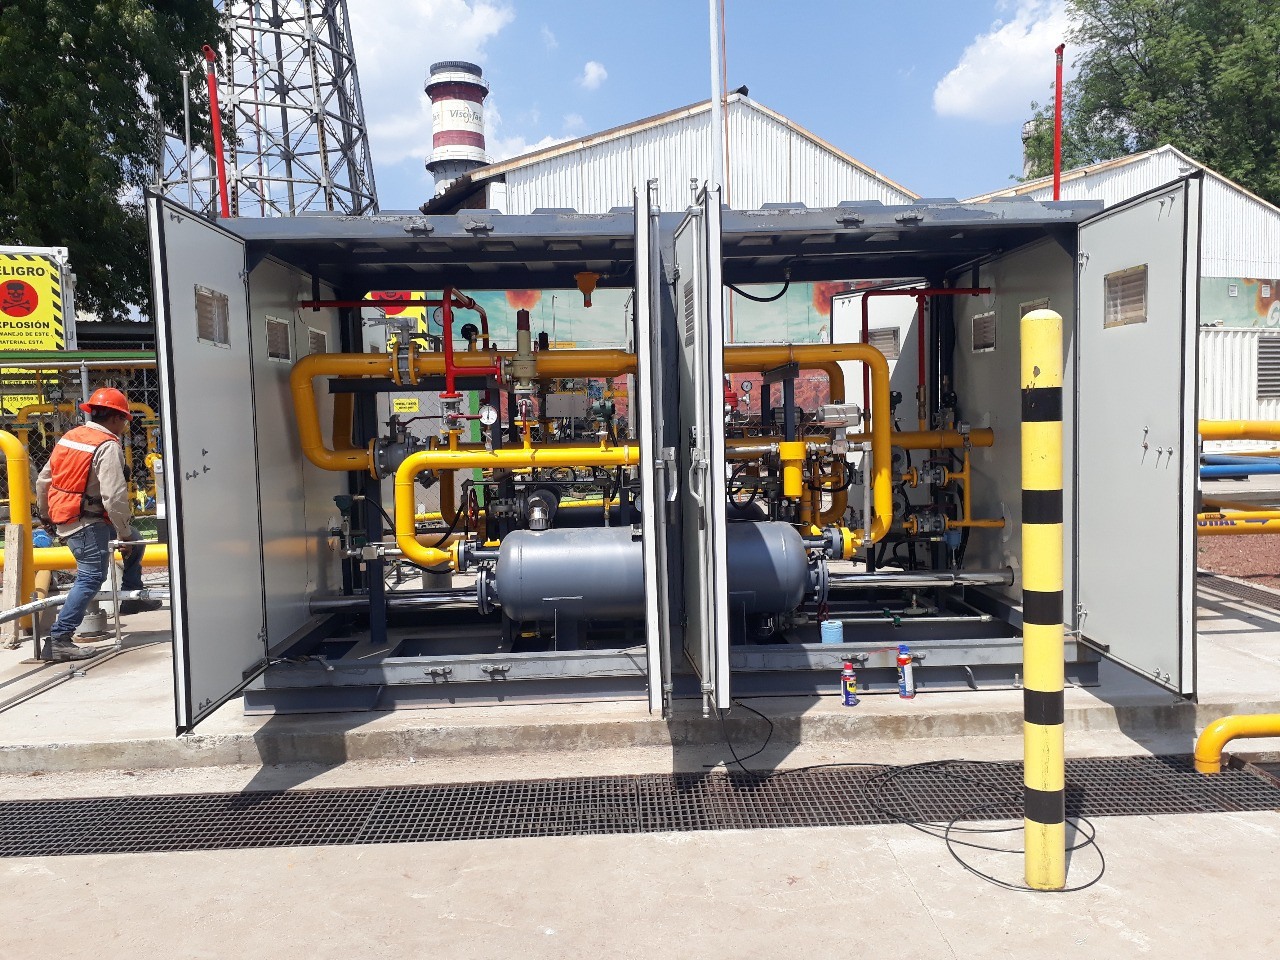 CNG Pressure Reducing And Metering Station 2000NM3/h Manufacturers, CNG Pressure Reducing And Metering Station 2000NM3/h Factory, Supply CNG Pressure Reducing And Metering Station 2000NM3/h